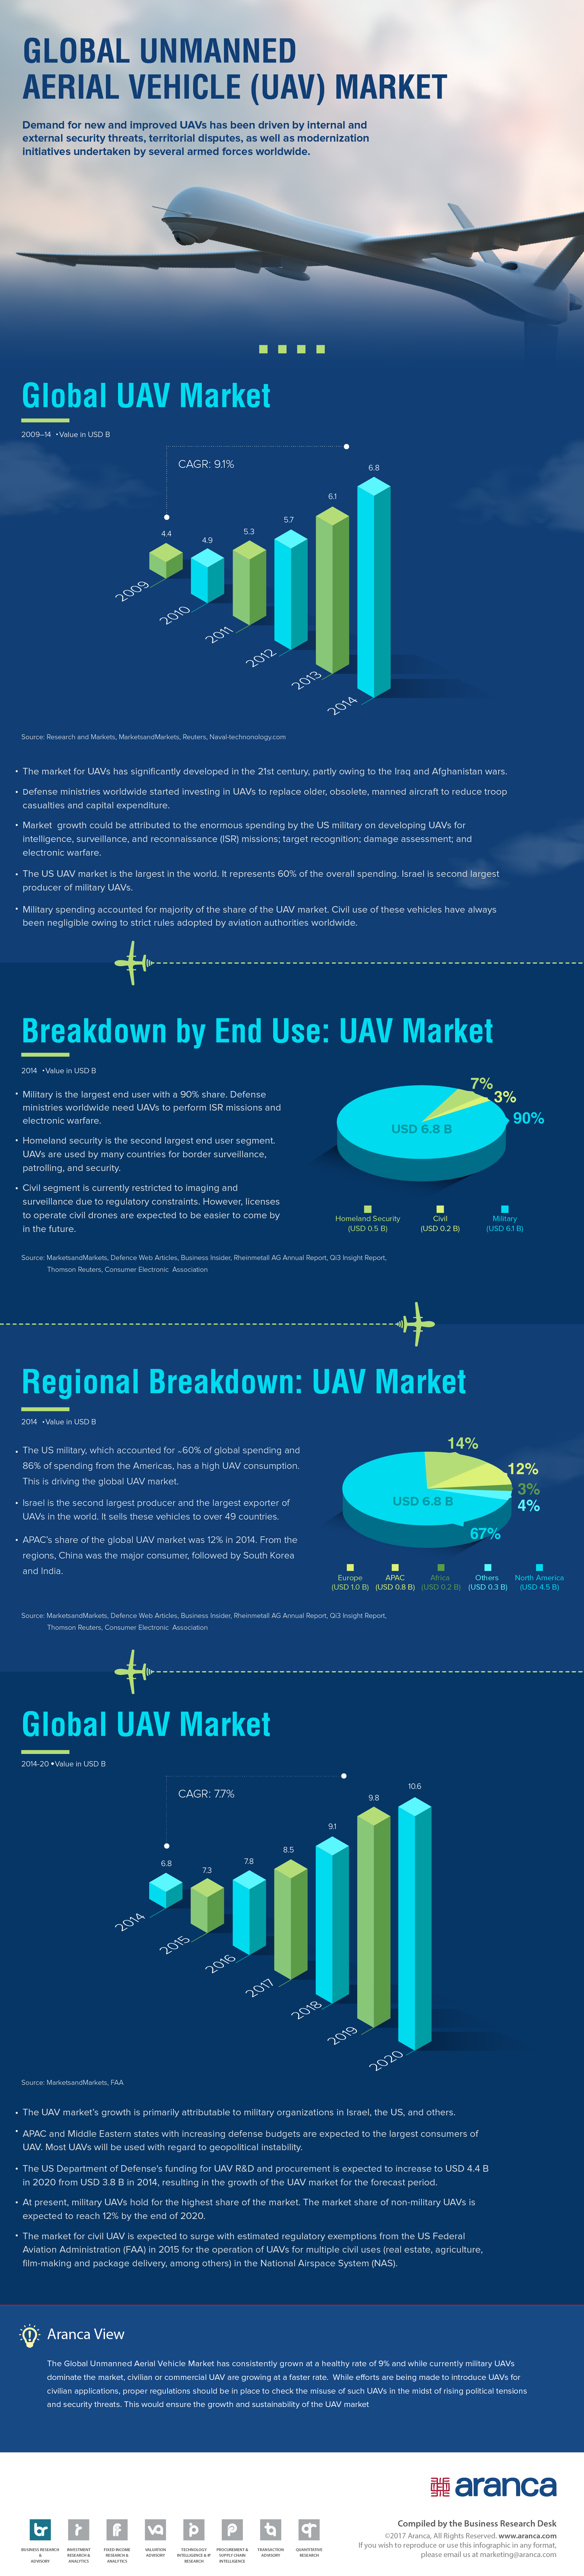 Global UAV Market Analysis